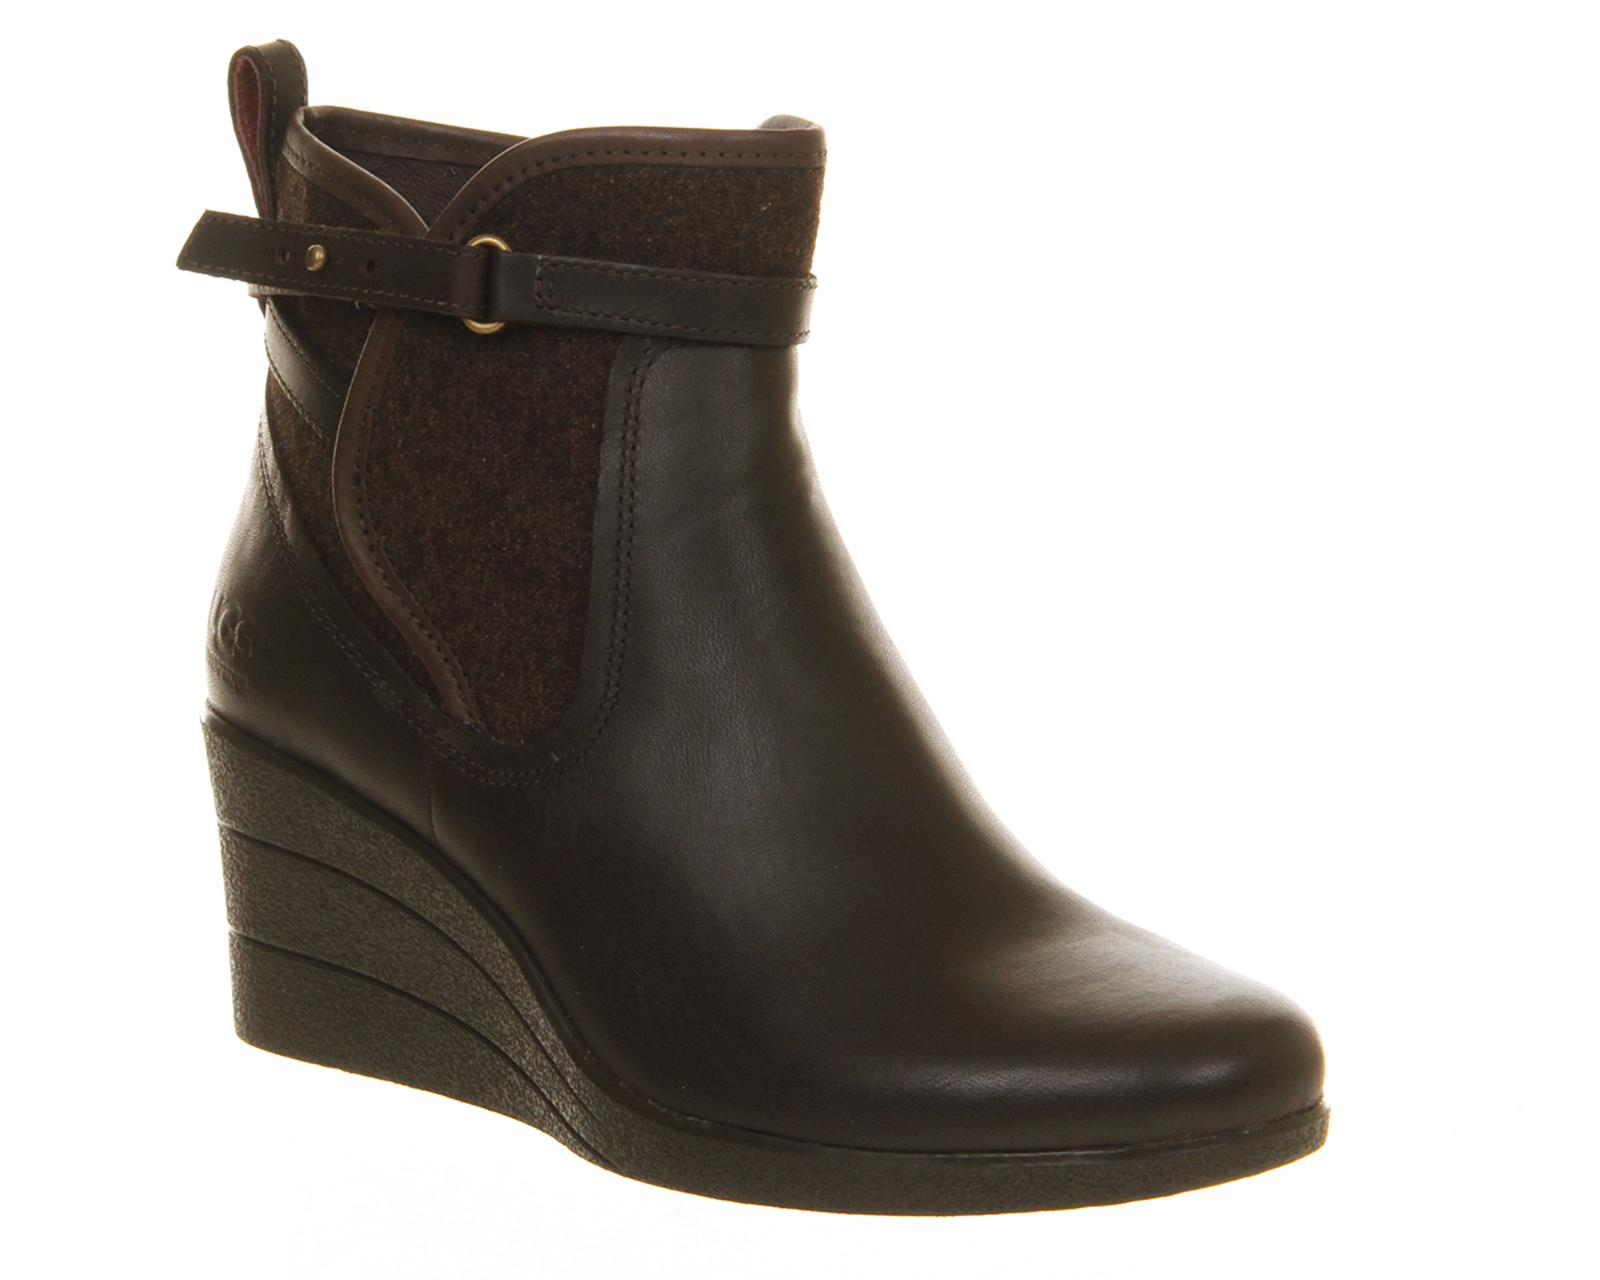 622eceaa1d8 Lyst - UGG Emalie Wedge Boots in Brown